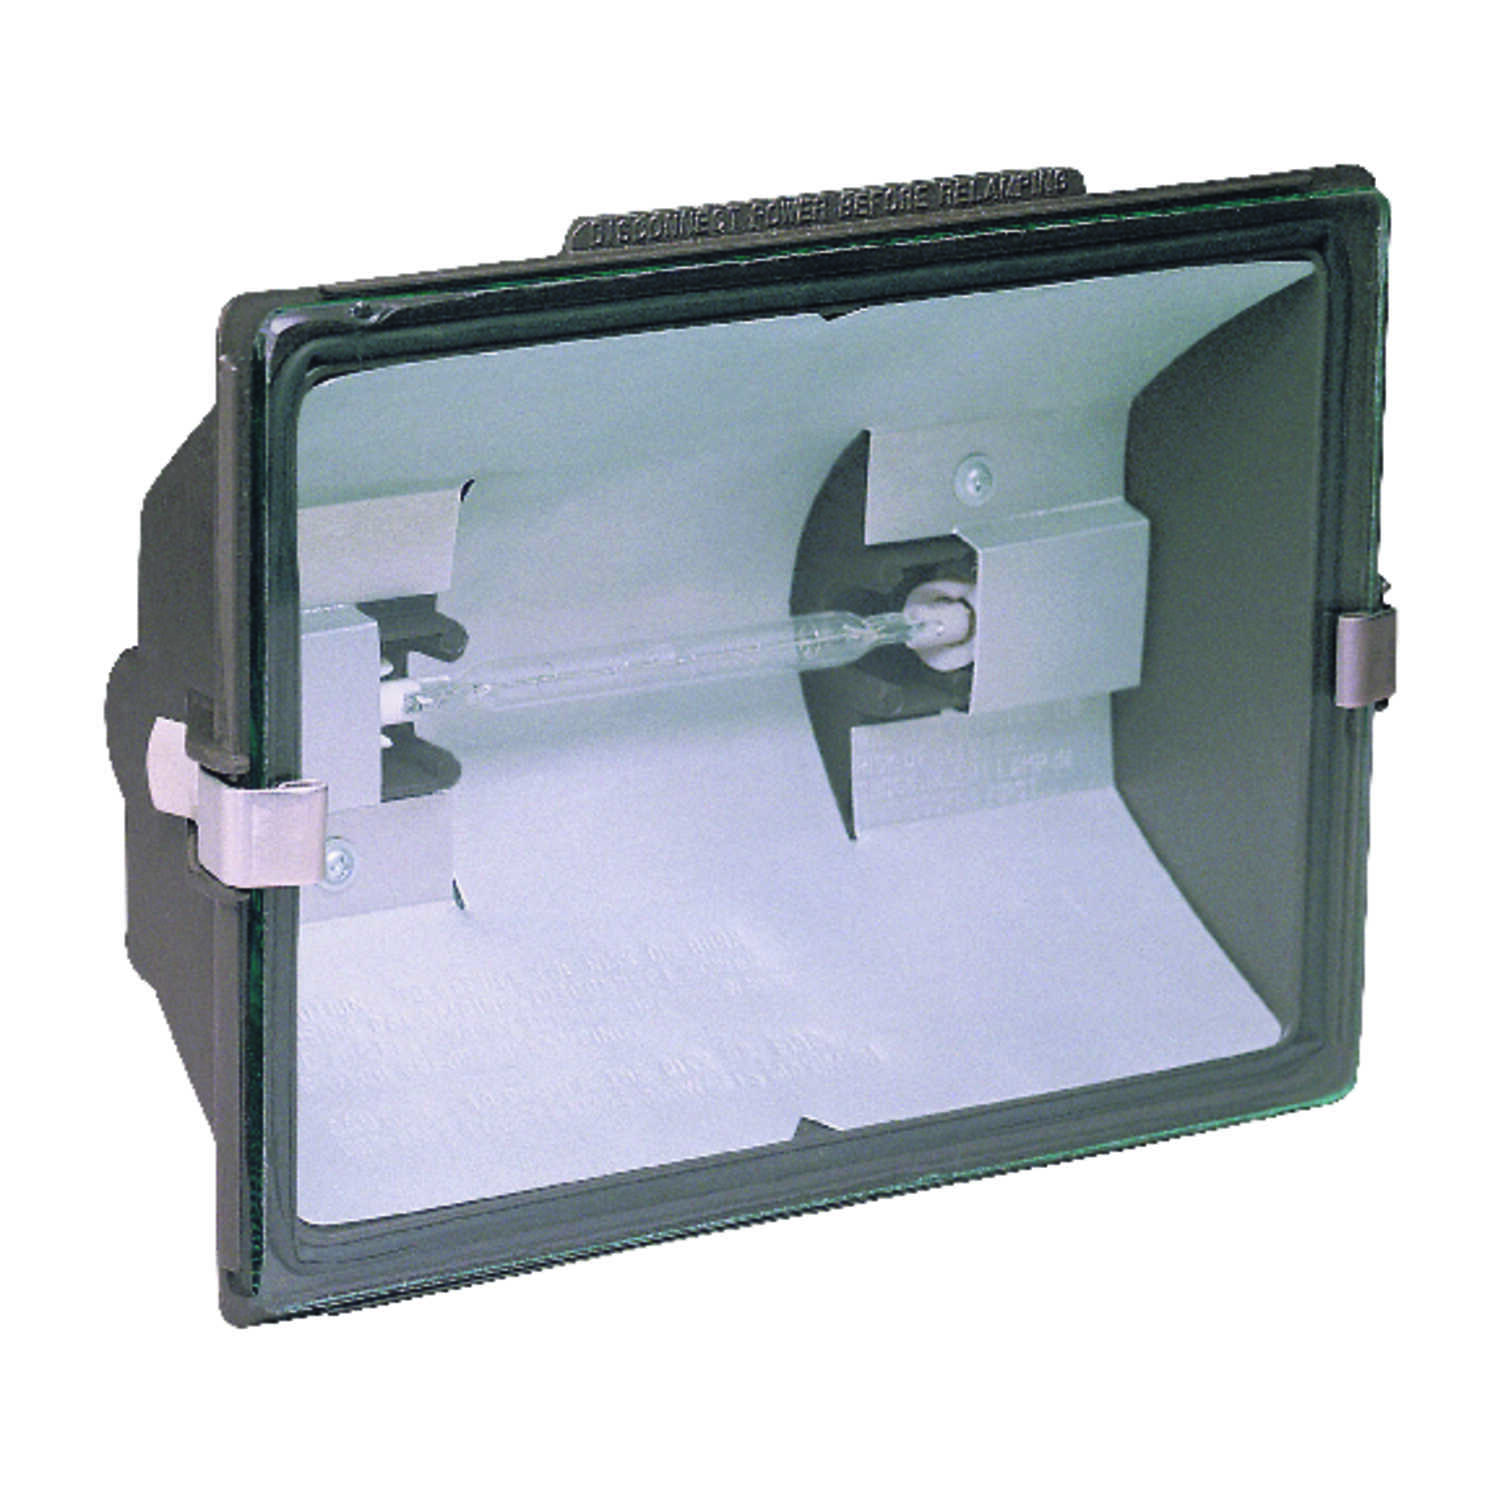 Heath Zenith  On/Off Activation  Halogen  1  Outdoor Flood Light  Electric